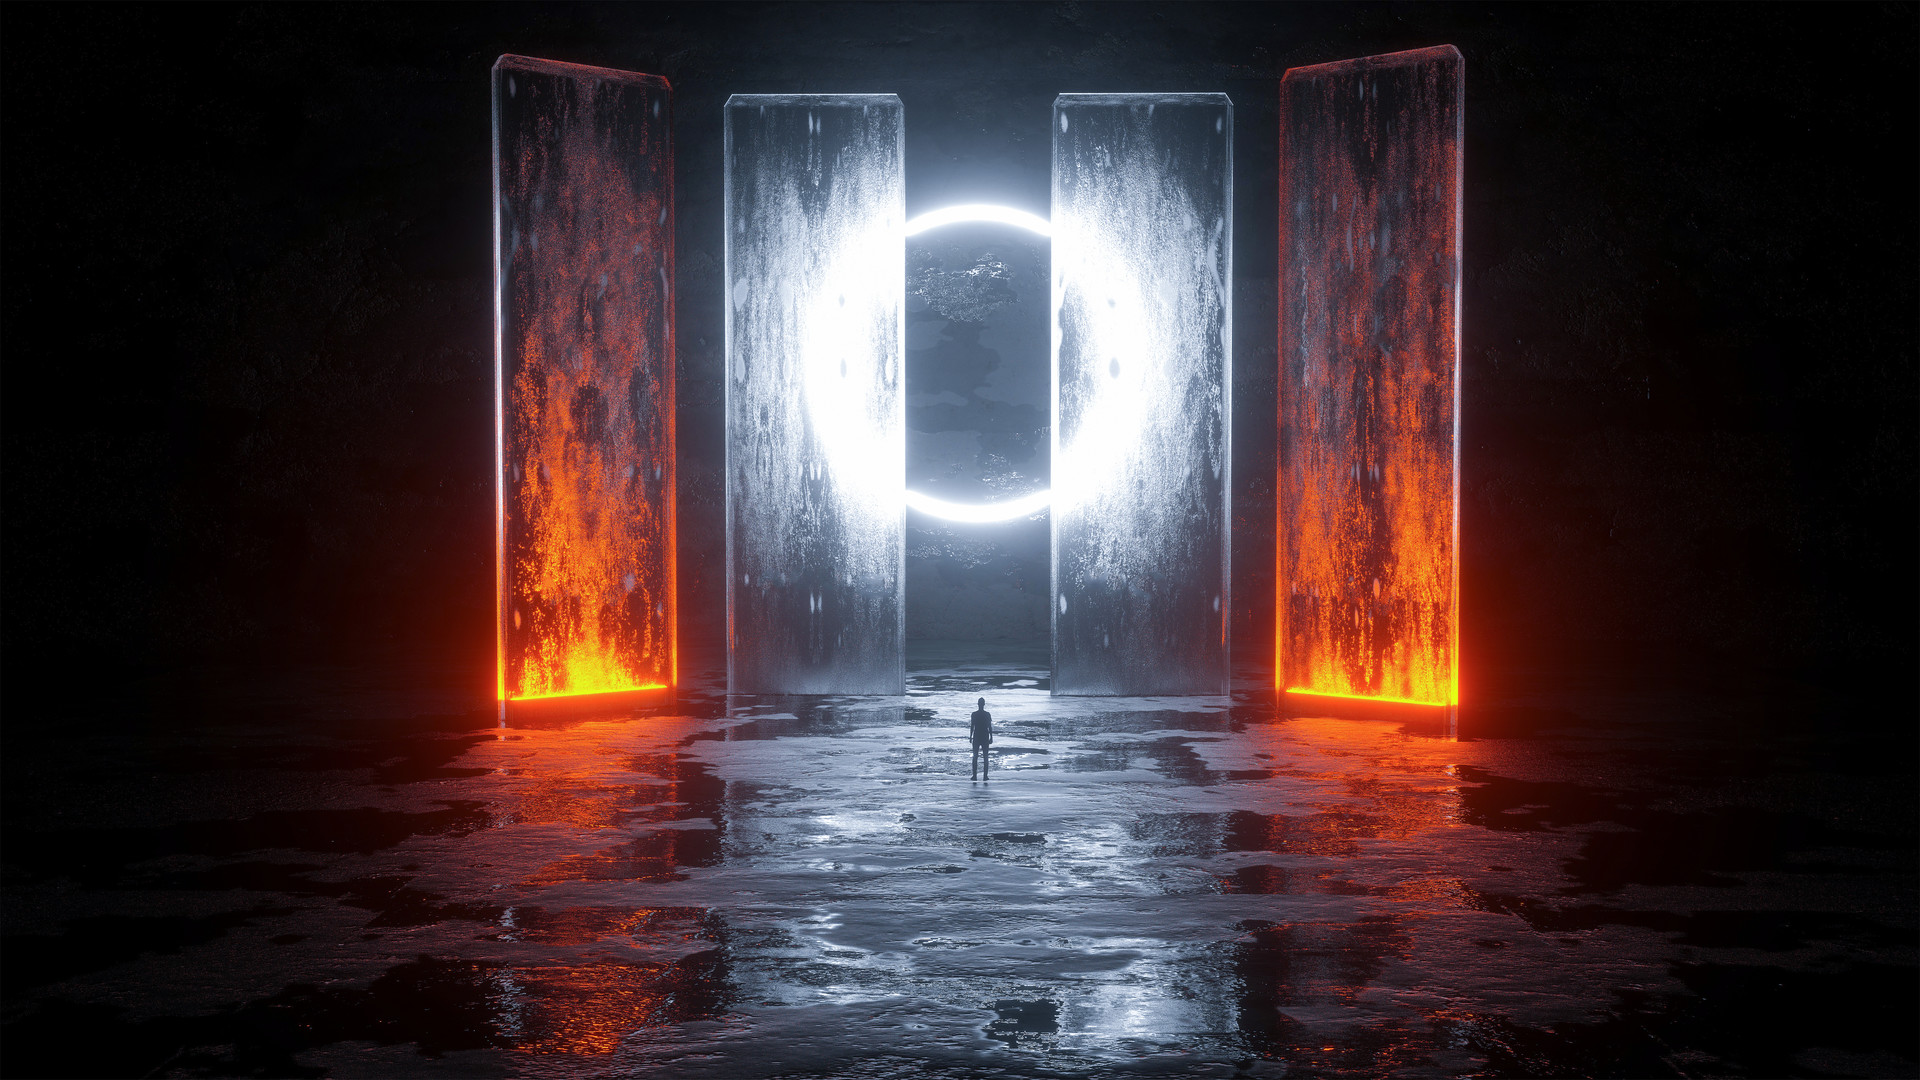 General 1920x1080 digital digital art artwork fantasy art landscape lights dark silhouette glowing circle pillar architecture burning neon lights environment surreal elements fire ice hallway concept art 3D